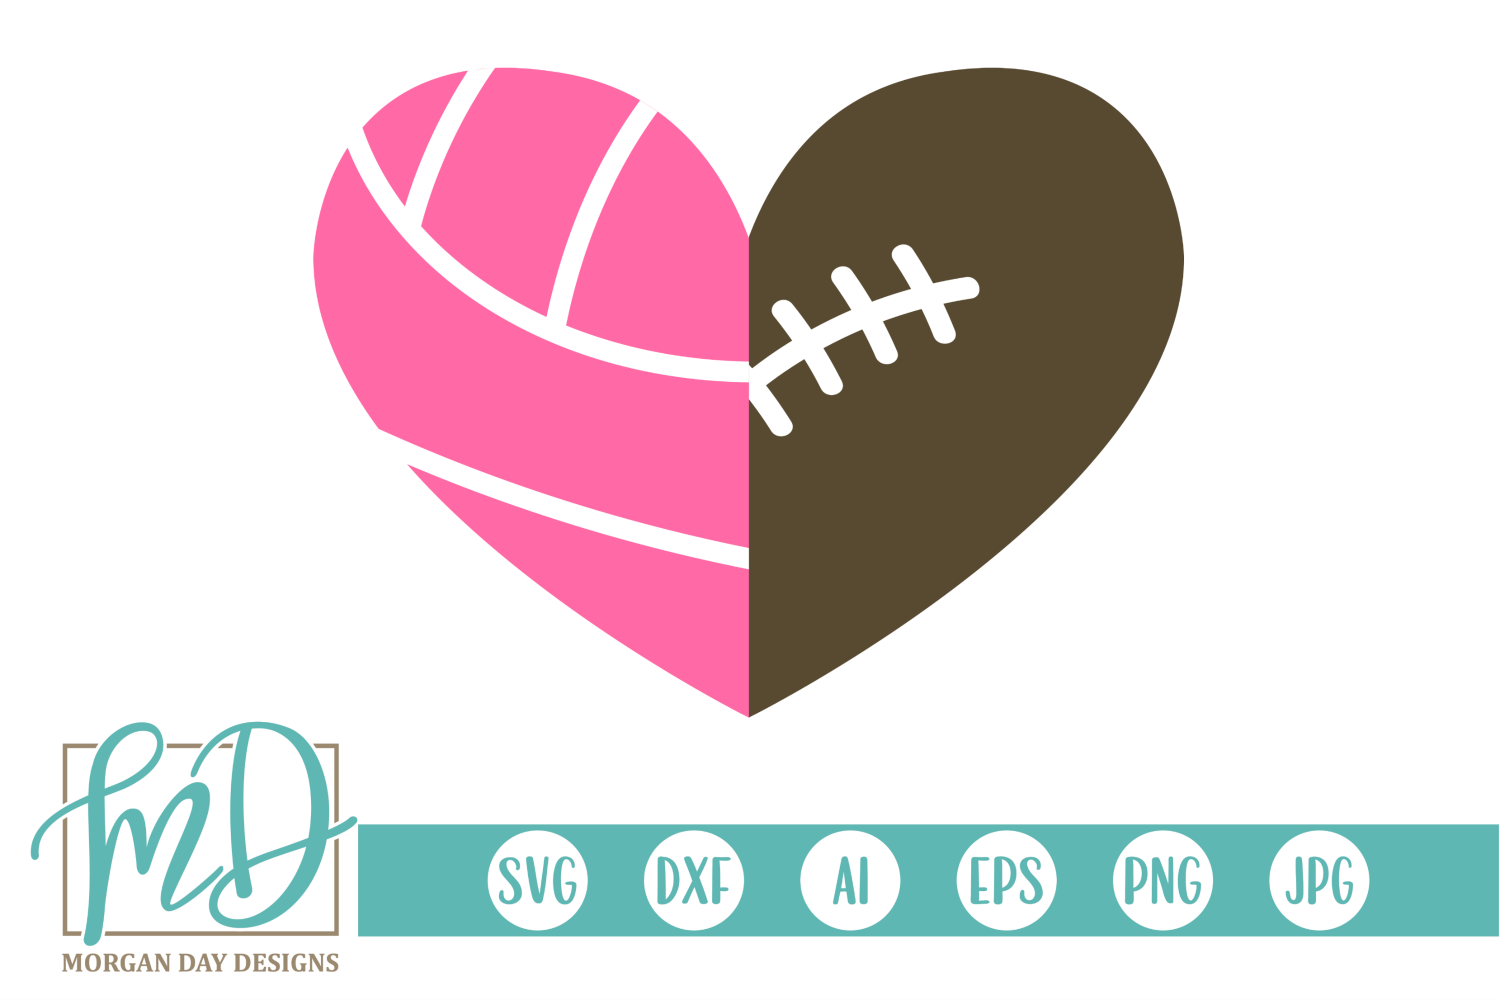 Volleyball Football Heart SVG, DXF, AI, EPS, PNG, JPEG example image 1